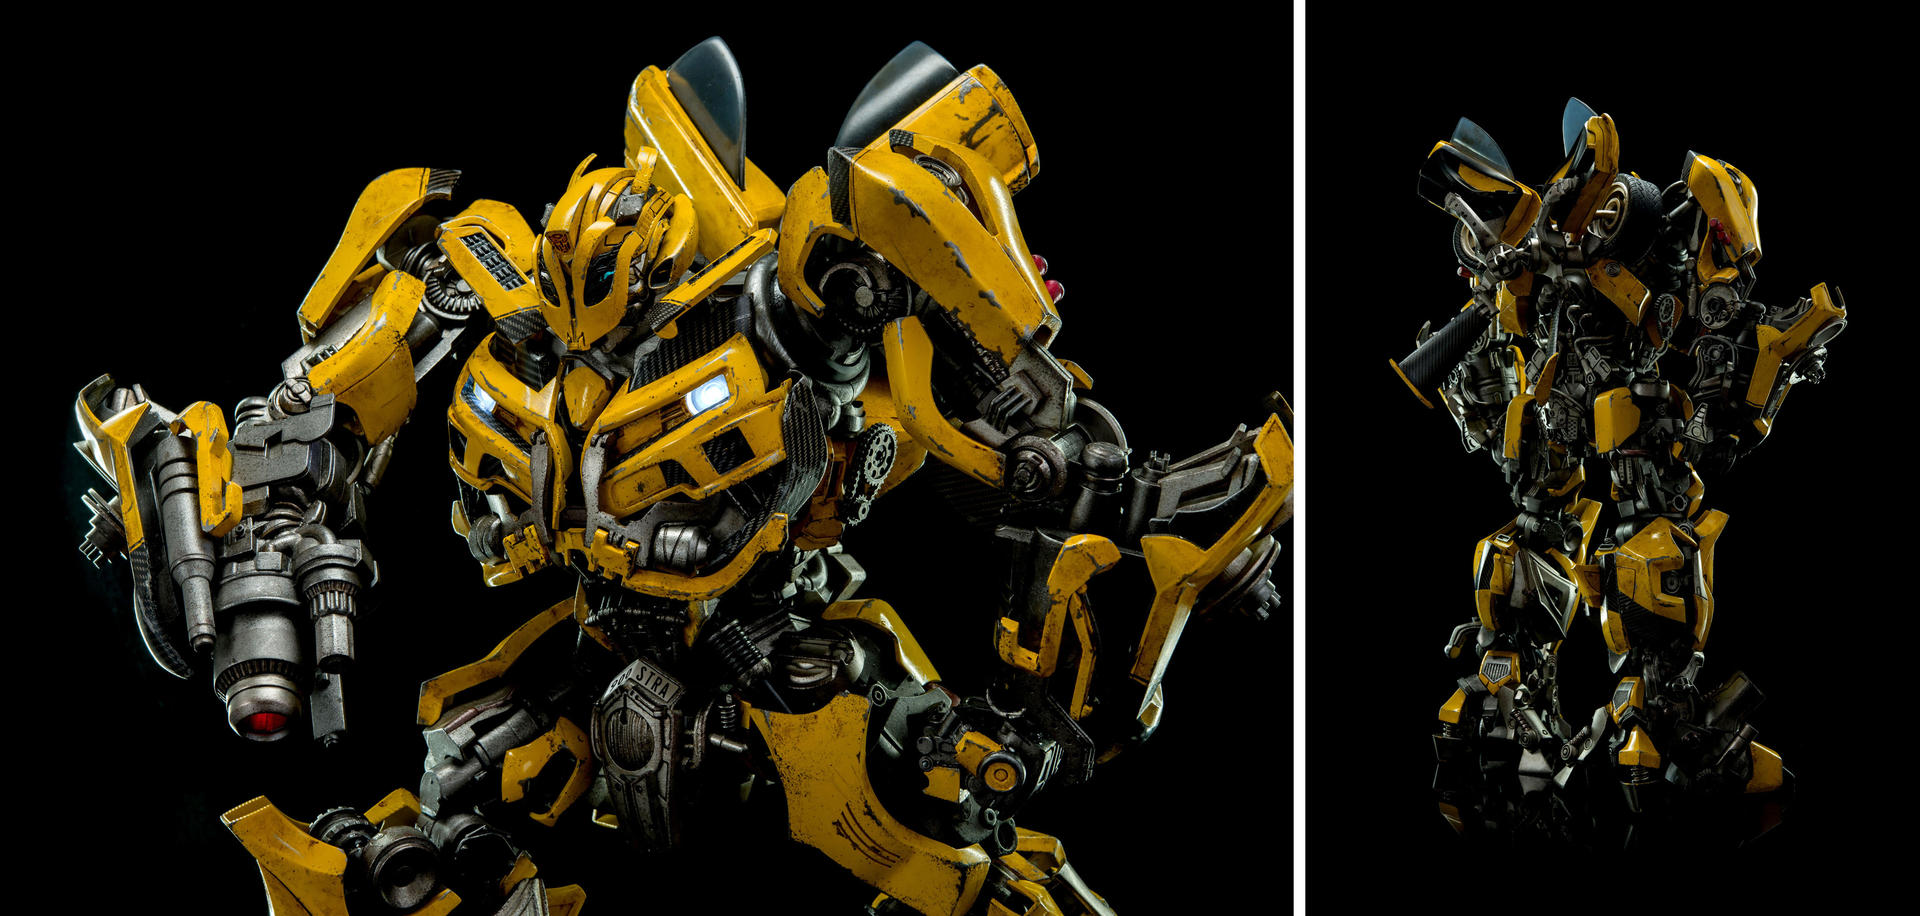 New Images and Info of 3A Transformers: Dark Of The Moon ...